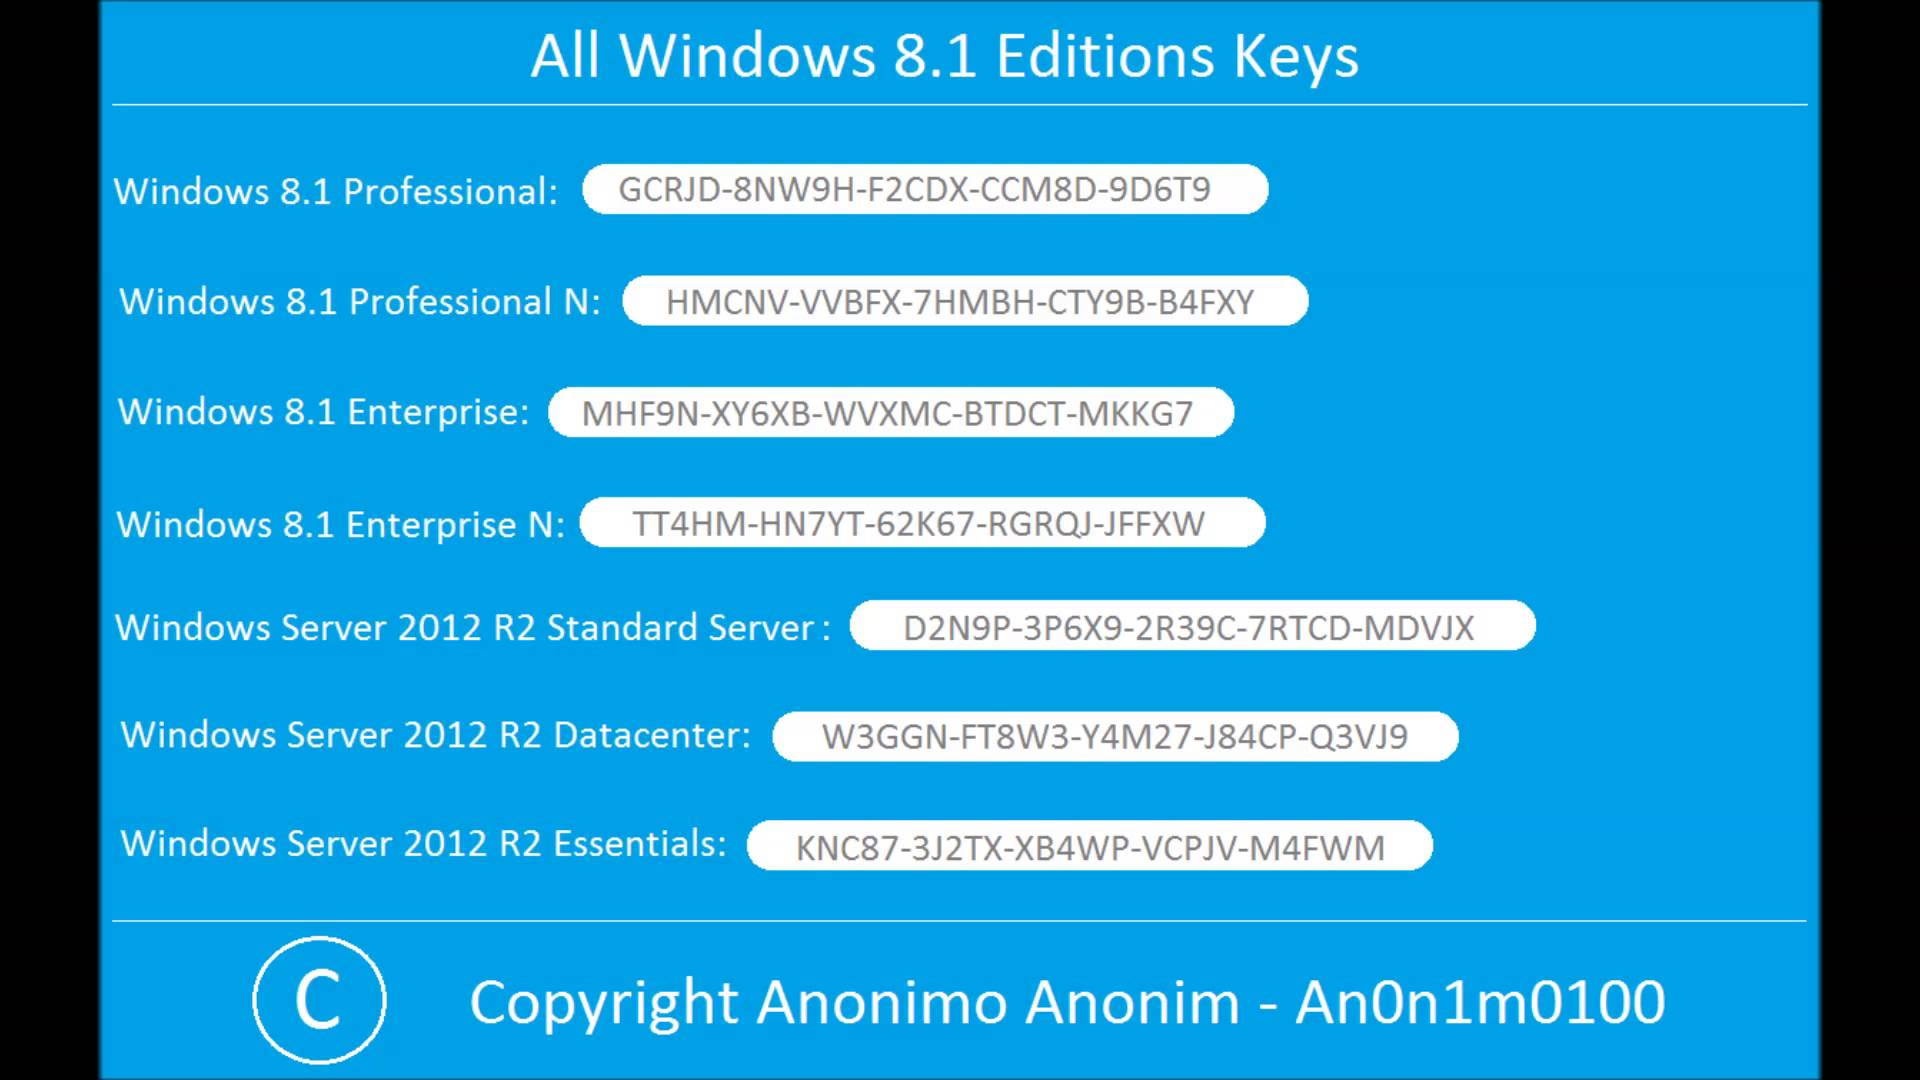 serial number windows 8.1 pro 64 bit 2016